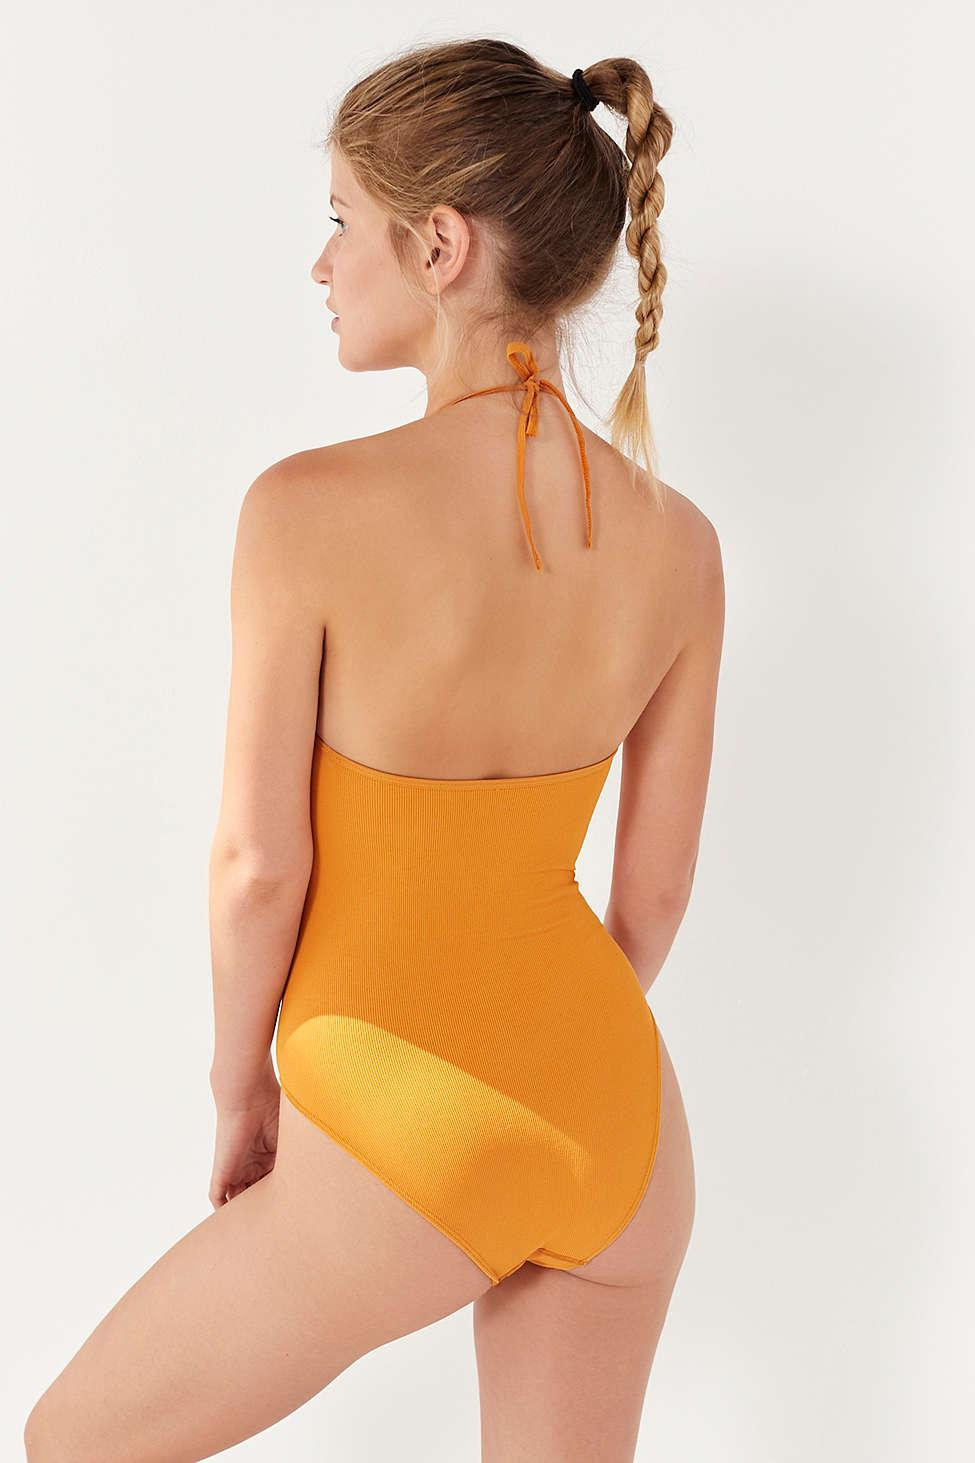 Lyst - Out From Under Bella Halter Bodysuit in Yellow 57b51a17d